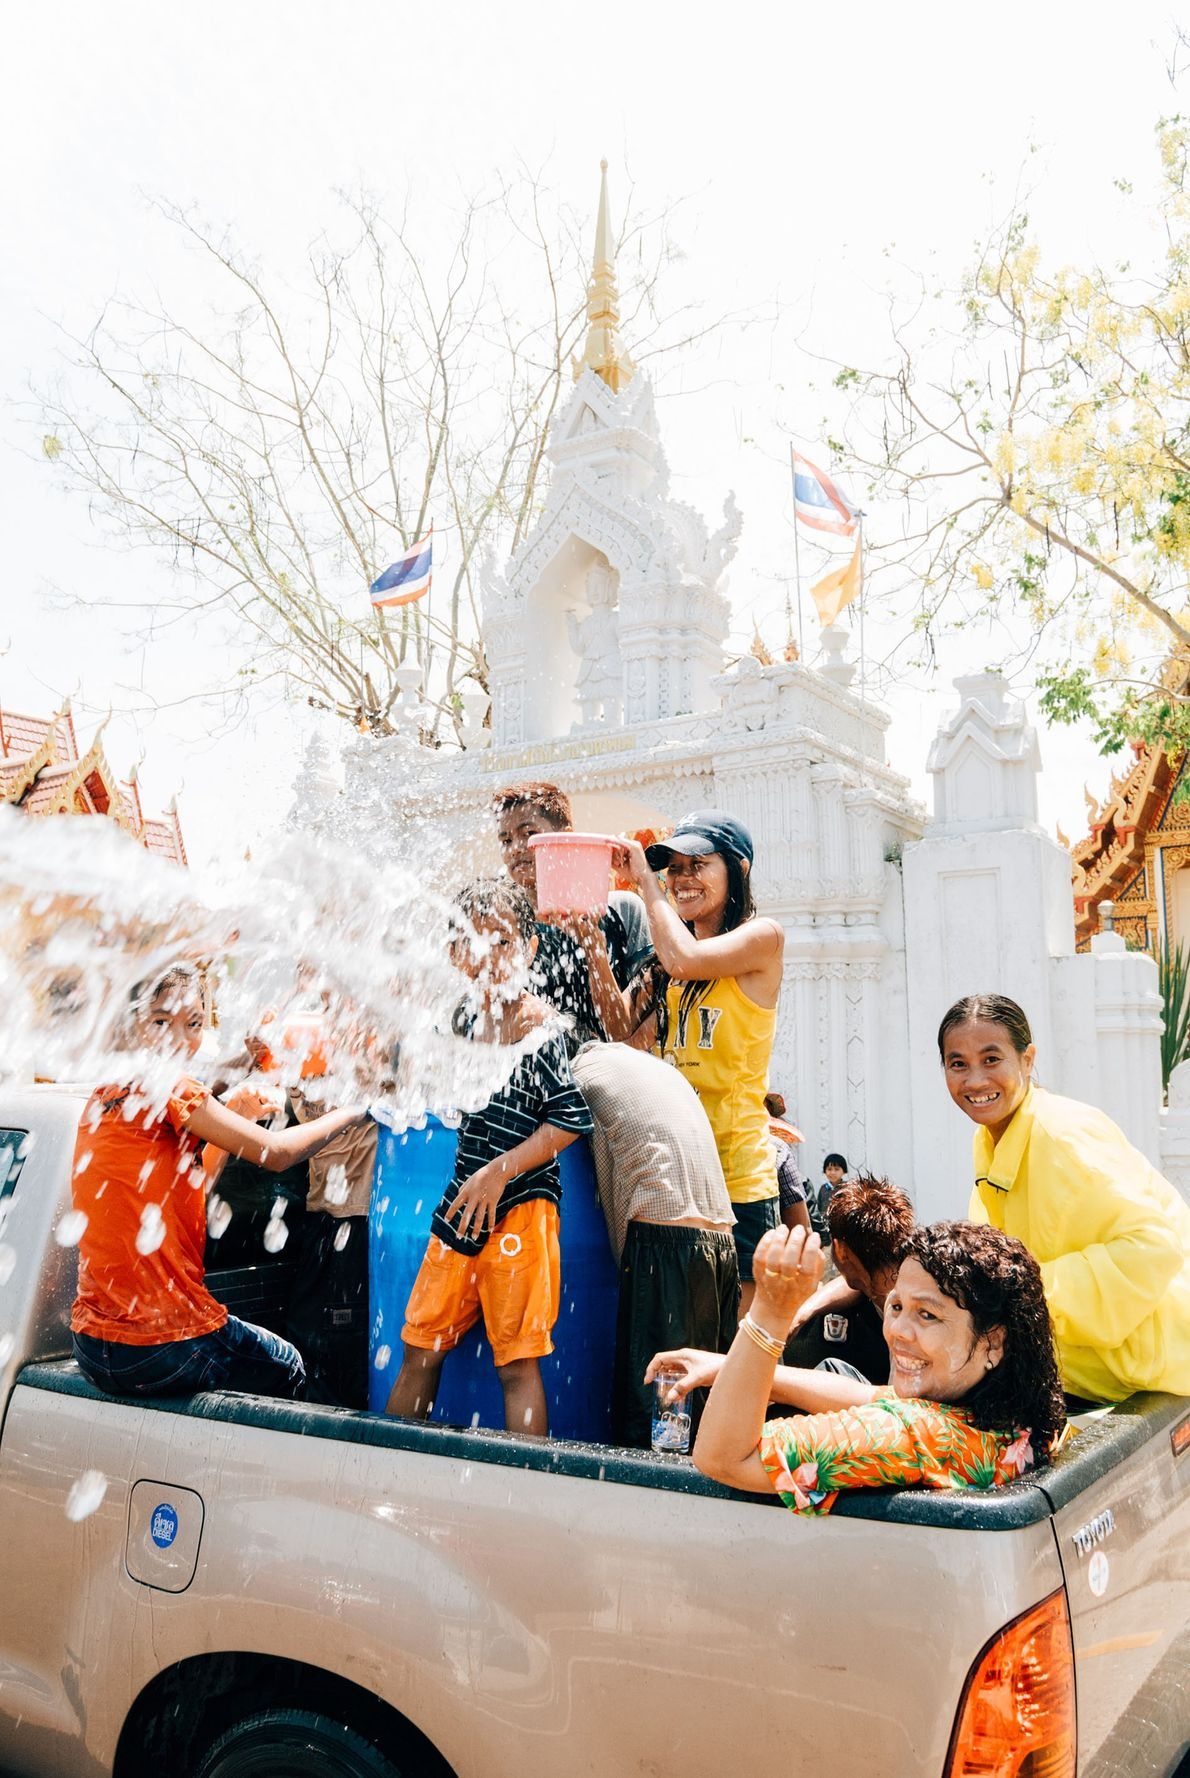 Celebrating Songkran (Thai New Year) the modern way in Nakhon Phanom, cruising the town and countryside ...